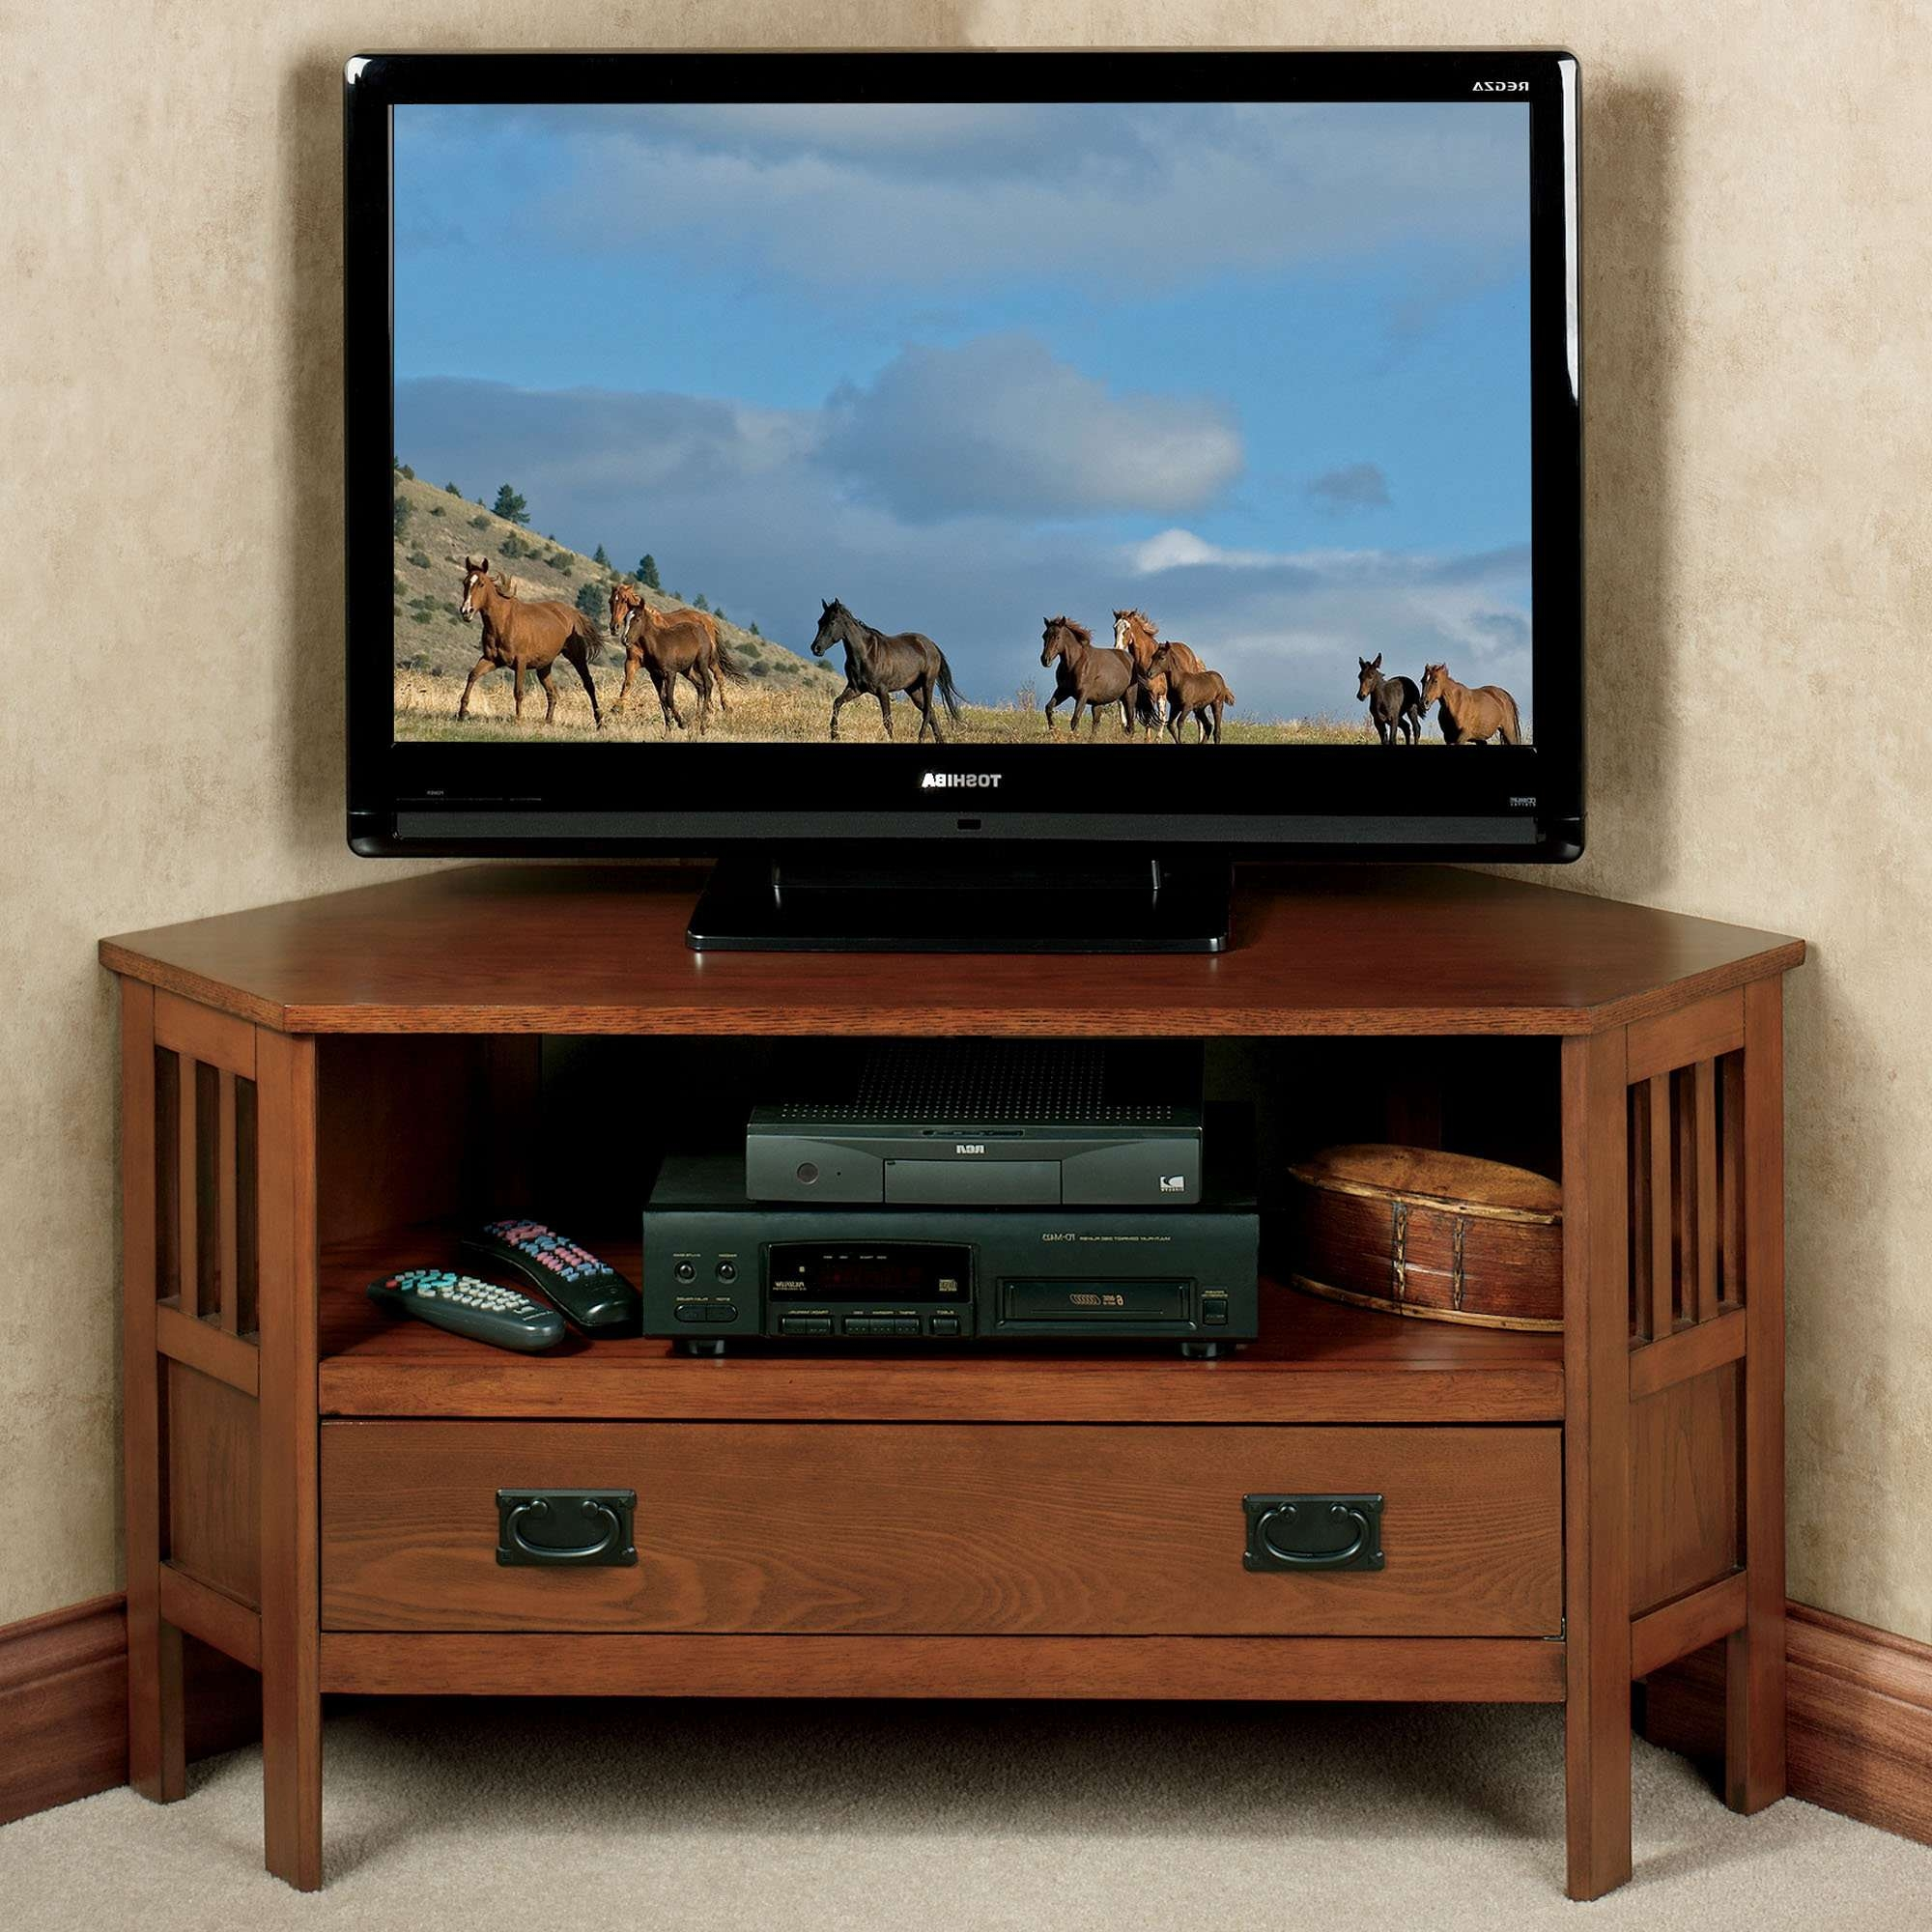 Home Decor: Alluring Wood Tv Stands For Flat Screens With Corner With Regard To Light Oak Tv Stands Flat Screen (View 10 of 15)